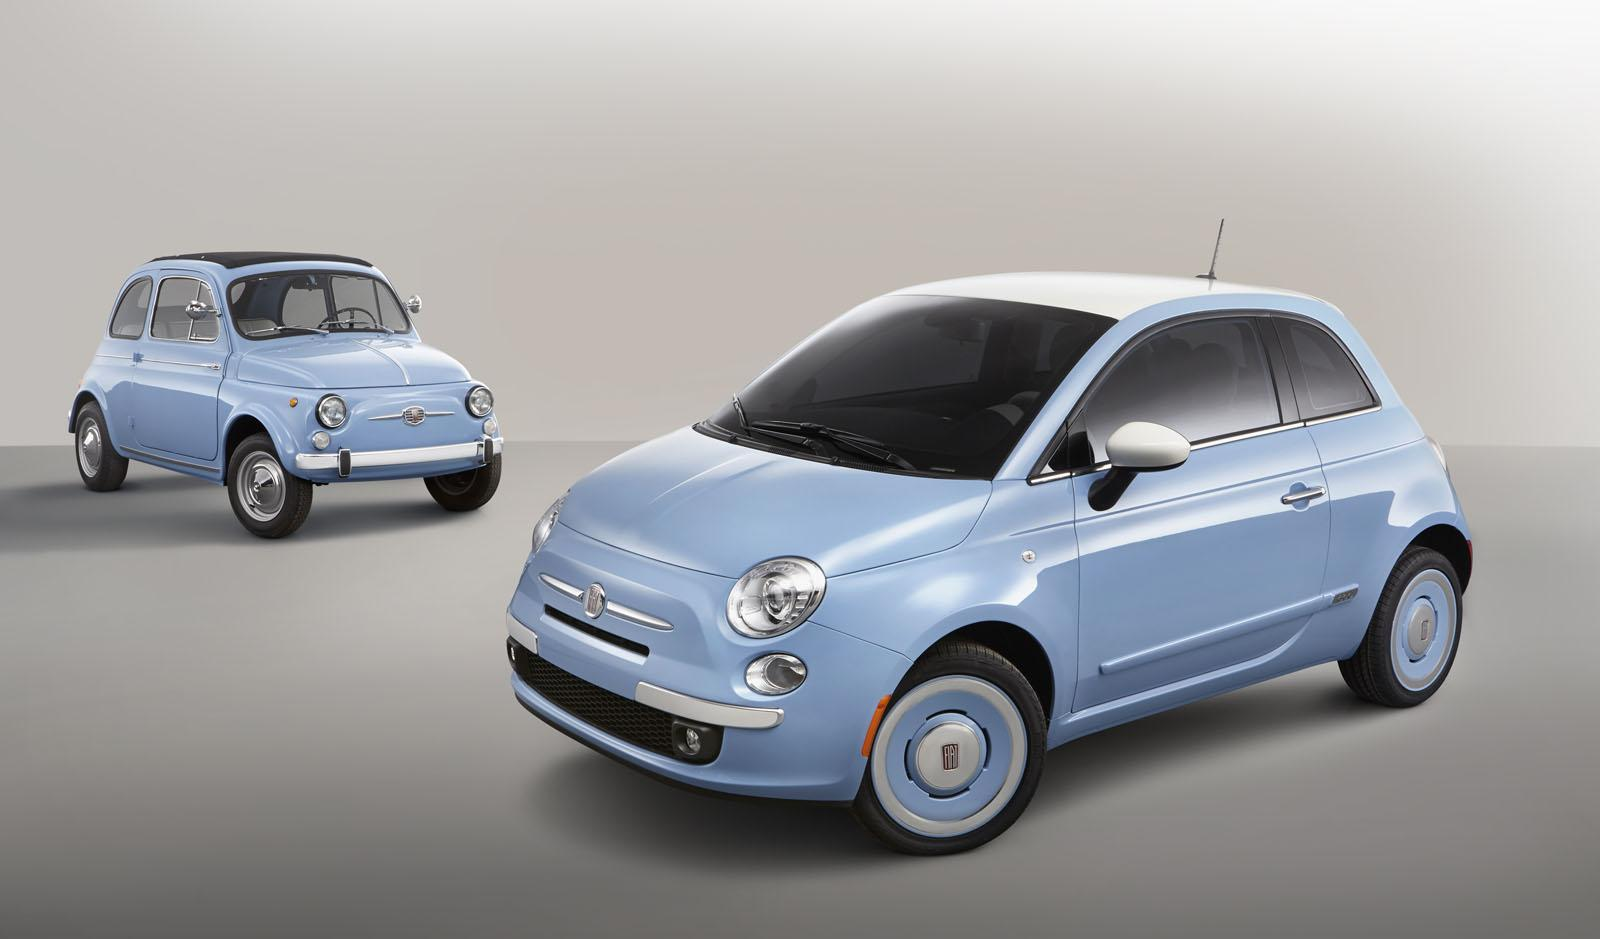 Fiat 500 1957 edition revealed